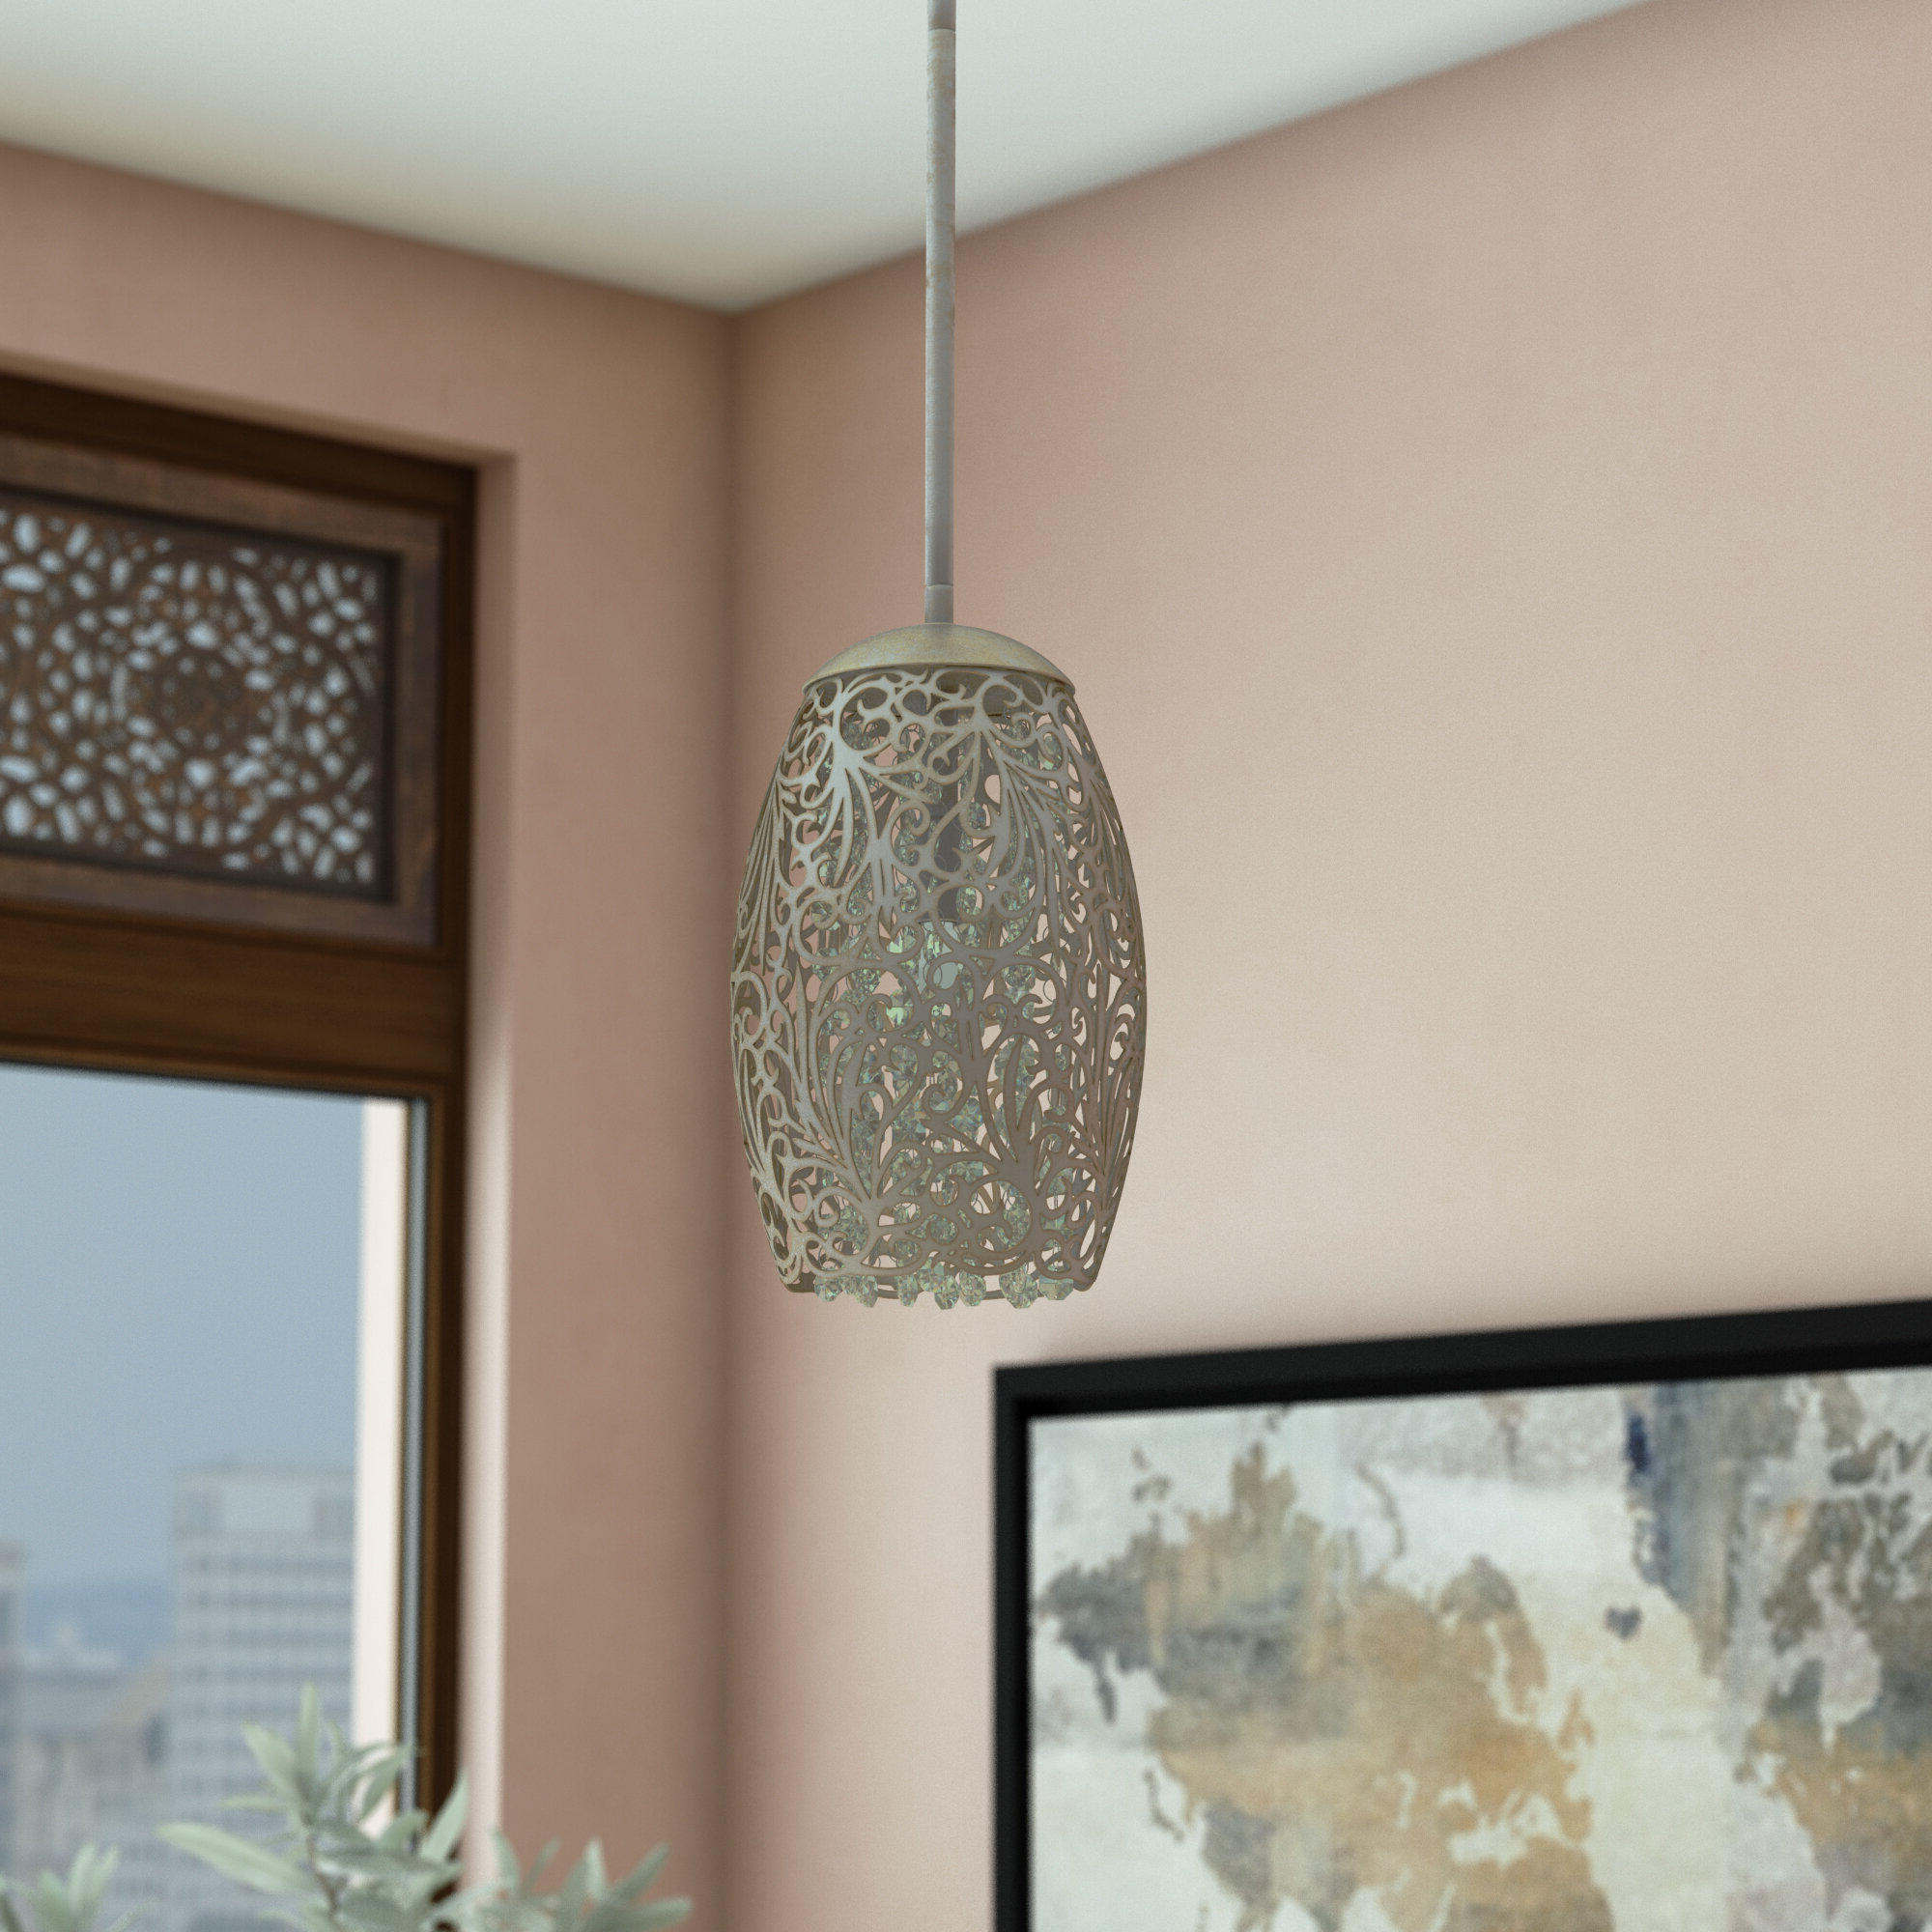 Kraker 1 Light Single Cylinder Pendant Intended For Favorite Devereaux 1 Light Single Globe Pendants (Gallery 7 of 20)